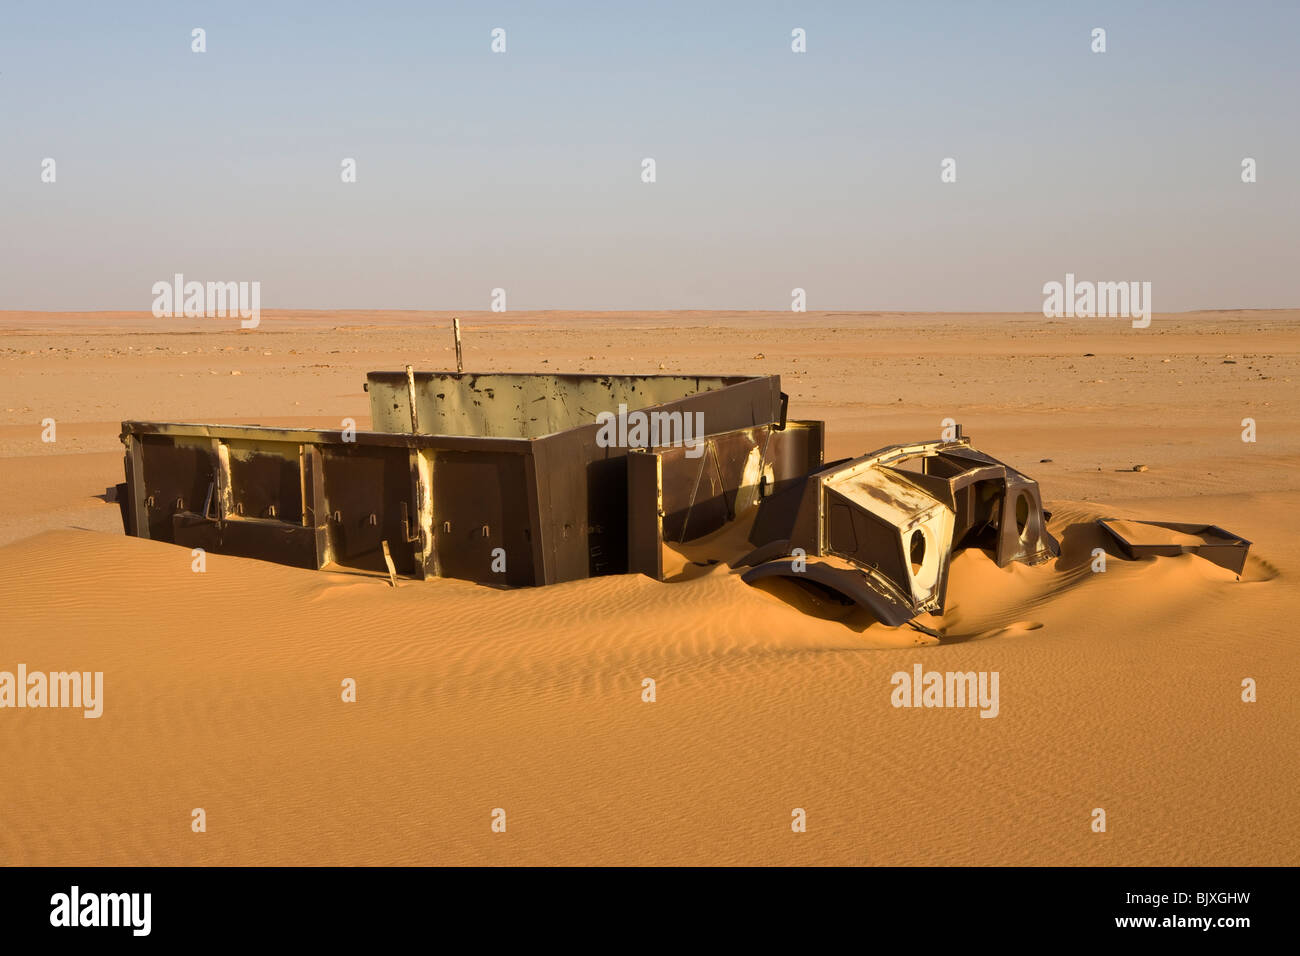 Abandoned Ford 30 CWT CMP truck from 1941/42 era sinking in the sand of the Western Desert, Egypt - Stock Image